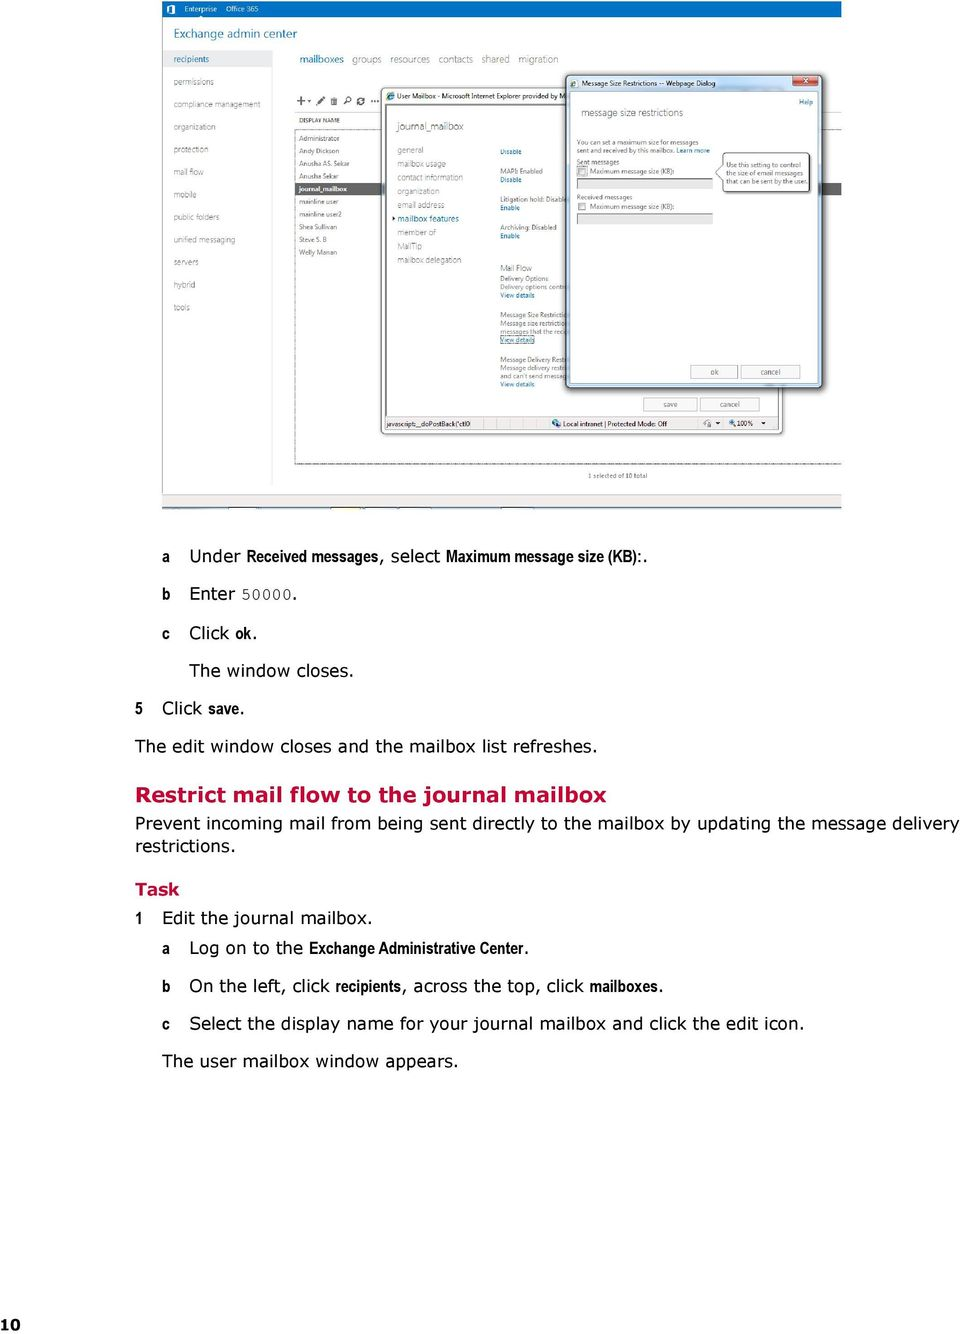 Restrict mail flow to the journal mailbox Prevent incoming mail from being sent directly to the mailbox by updating the message delivery